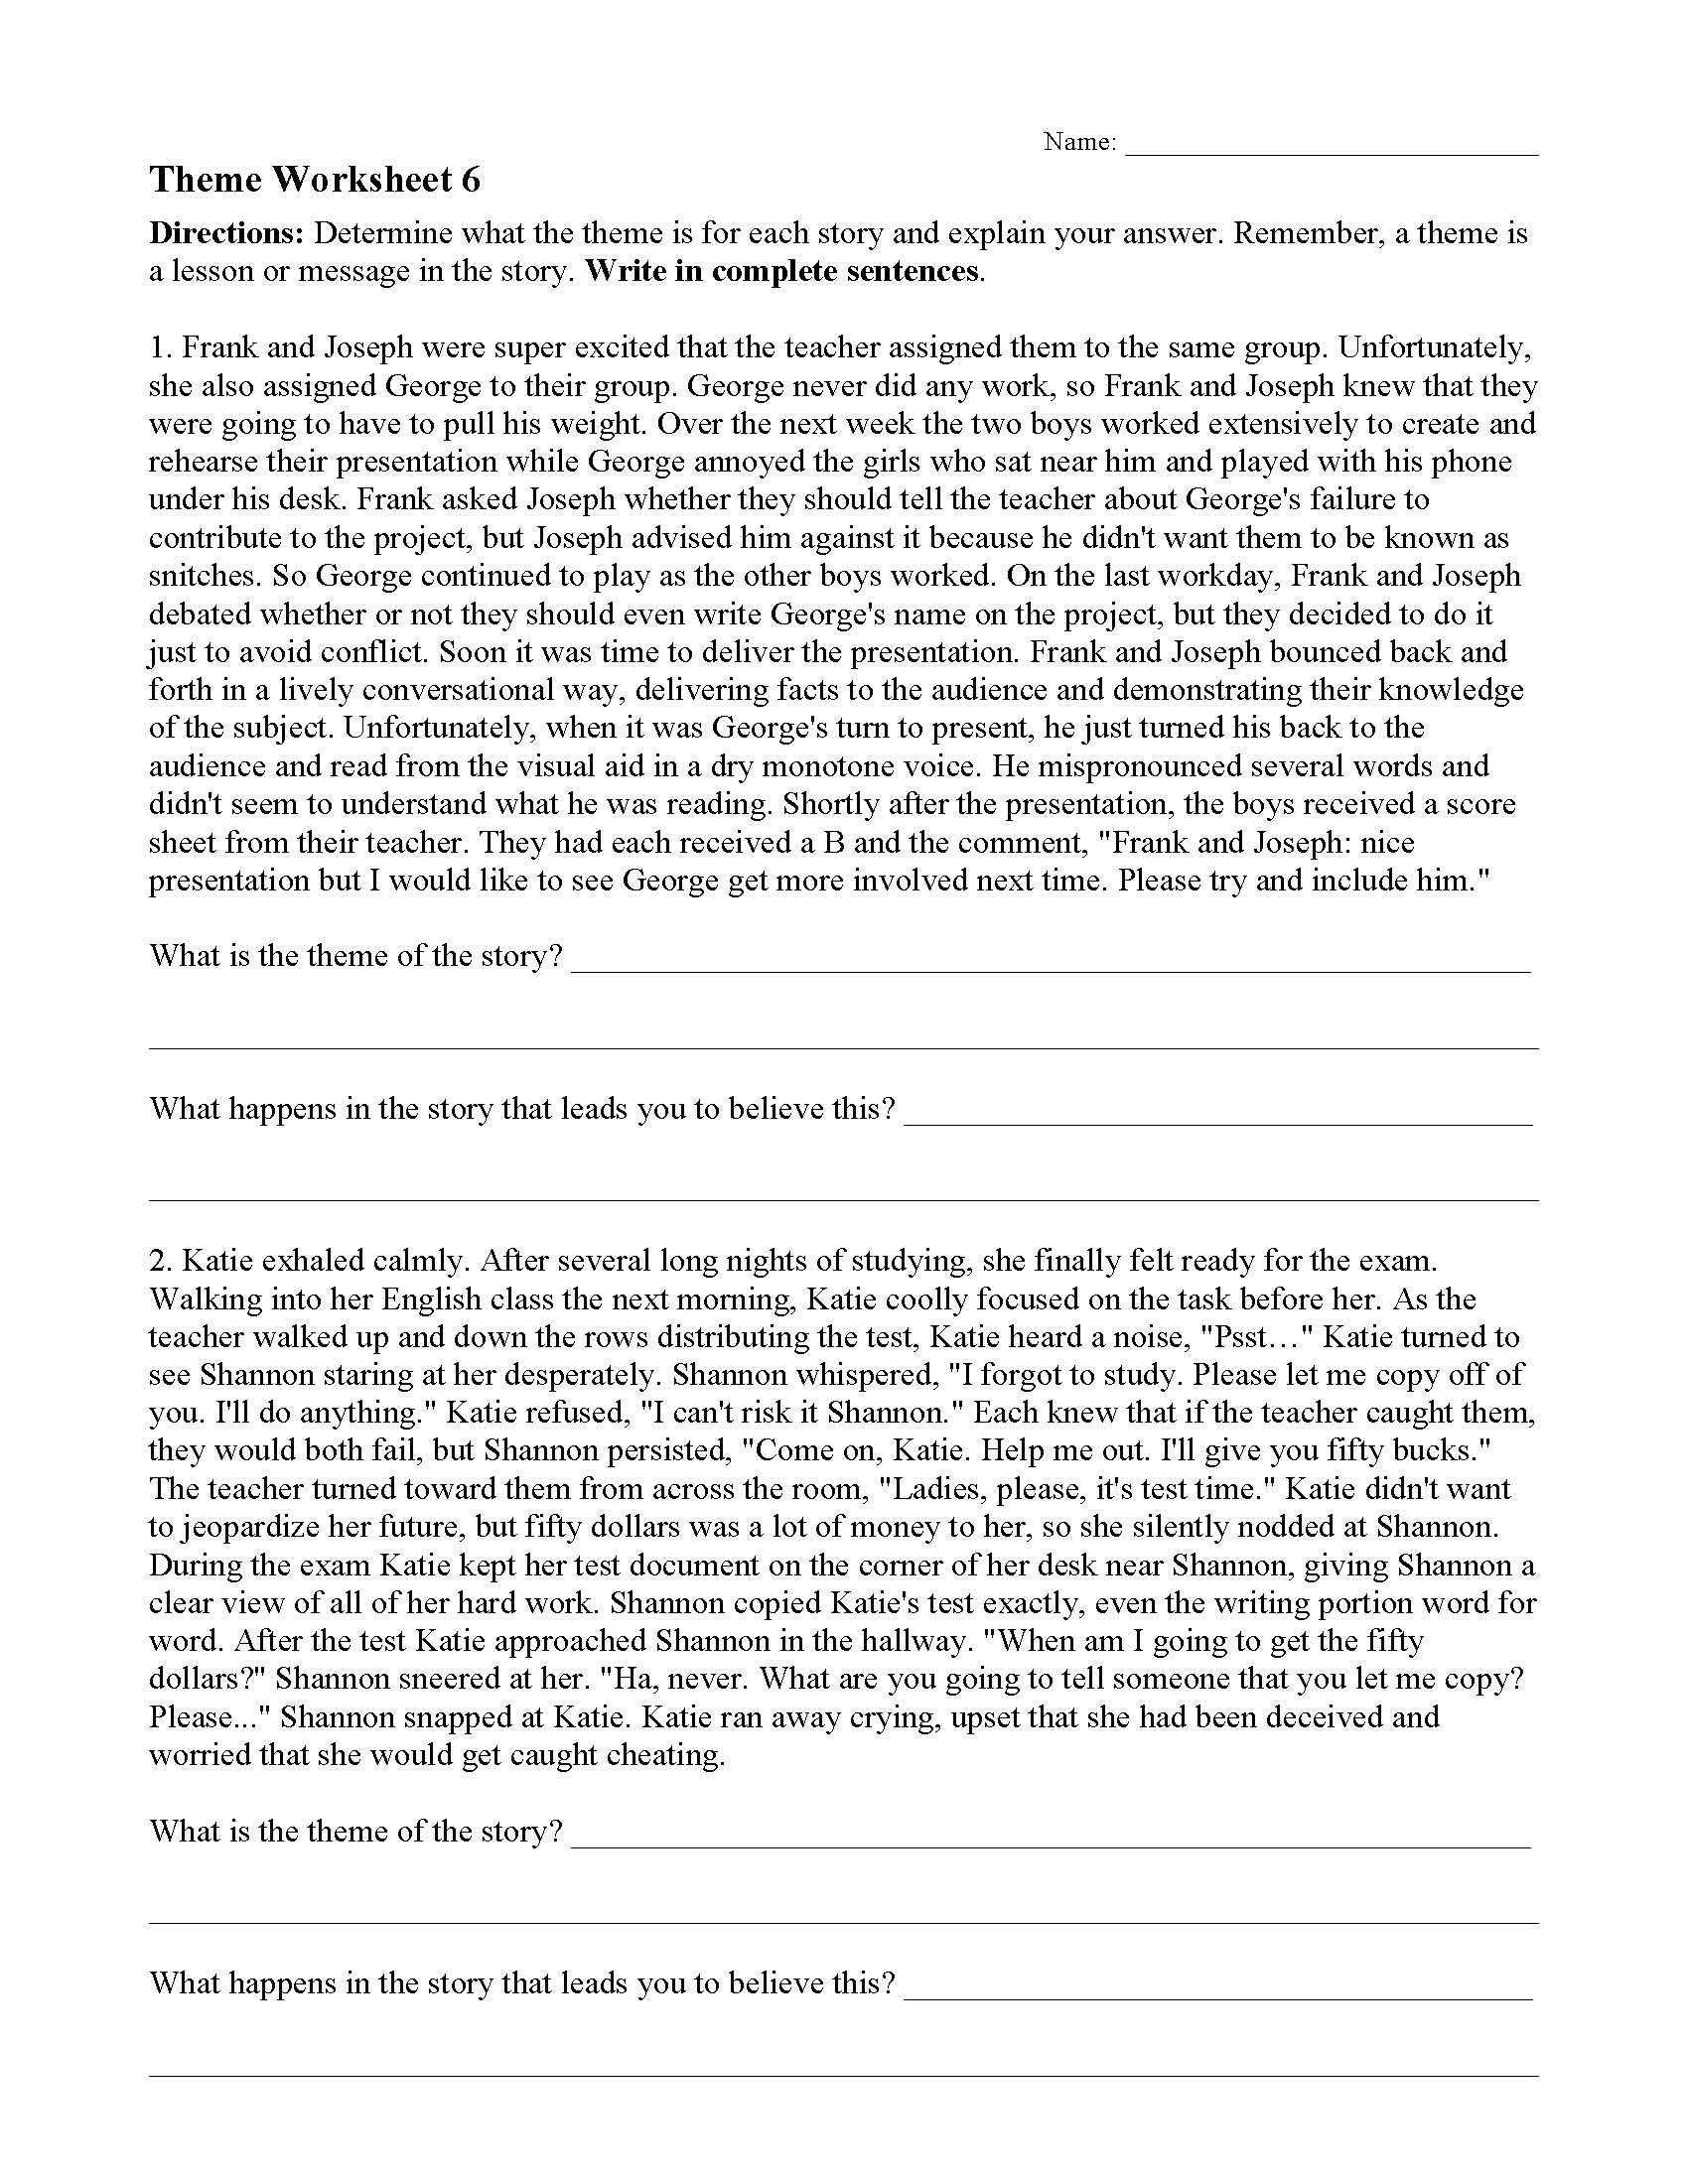 Theme Worksheets 5th Grade theme or Author S Message Worksheets